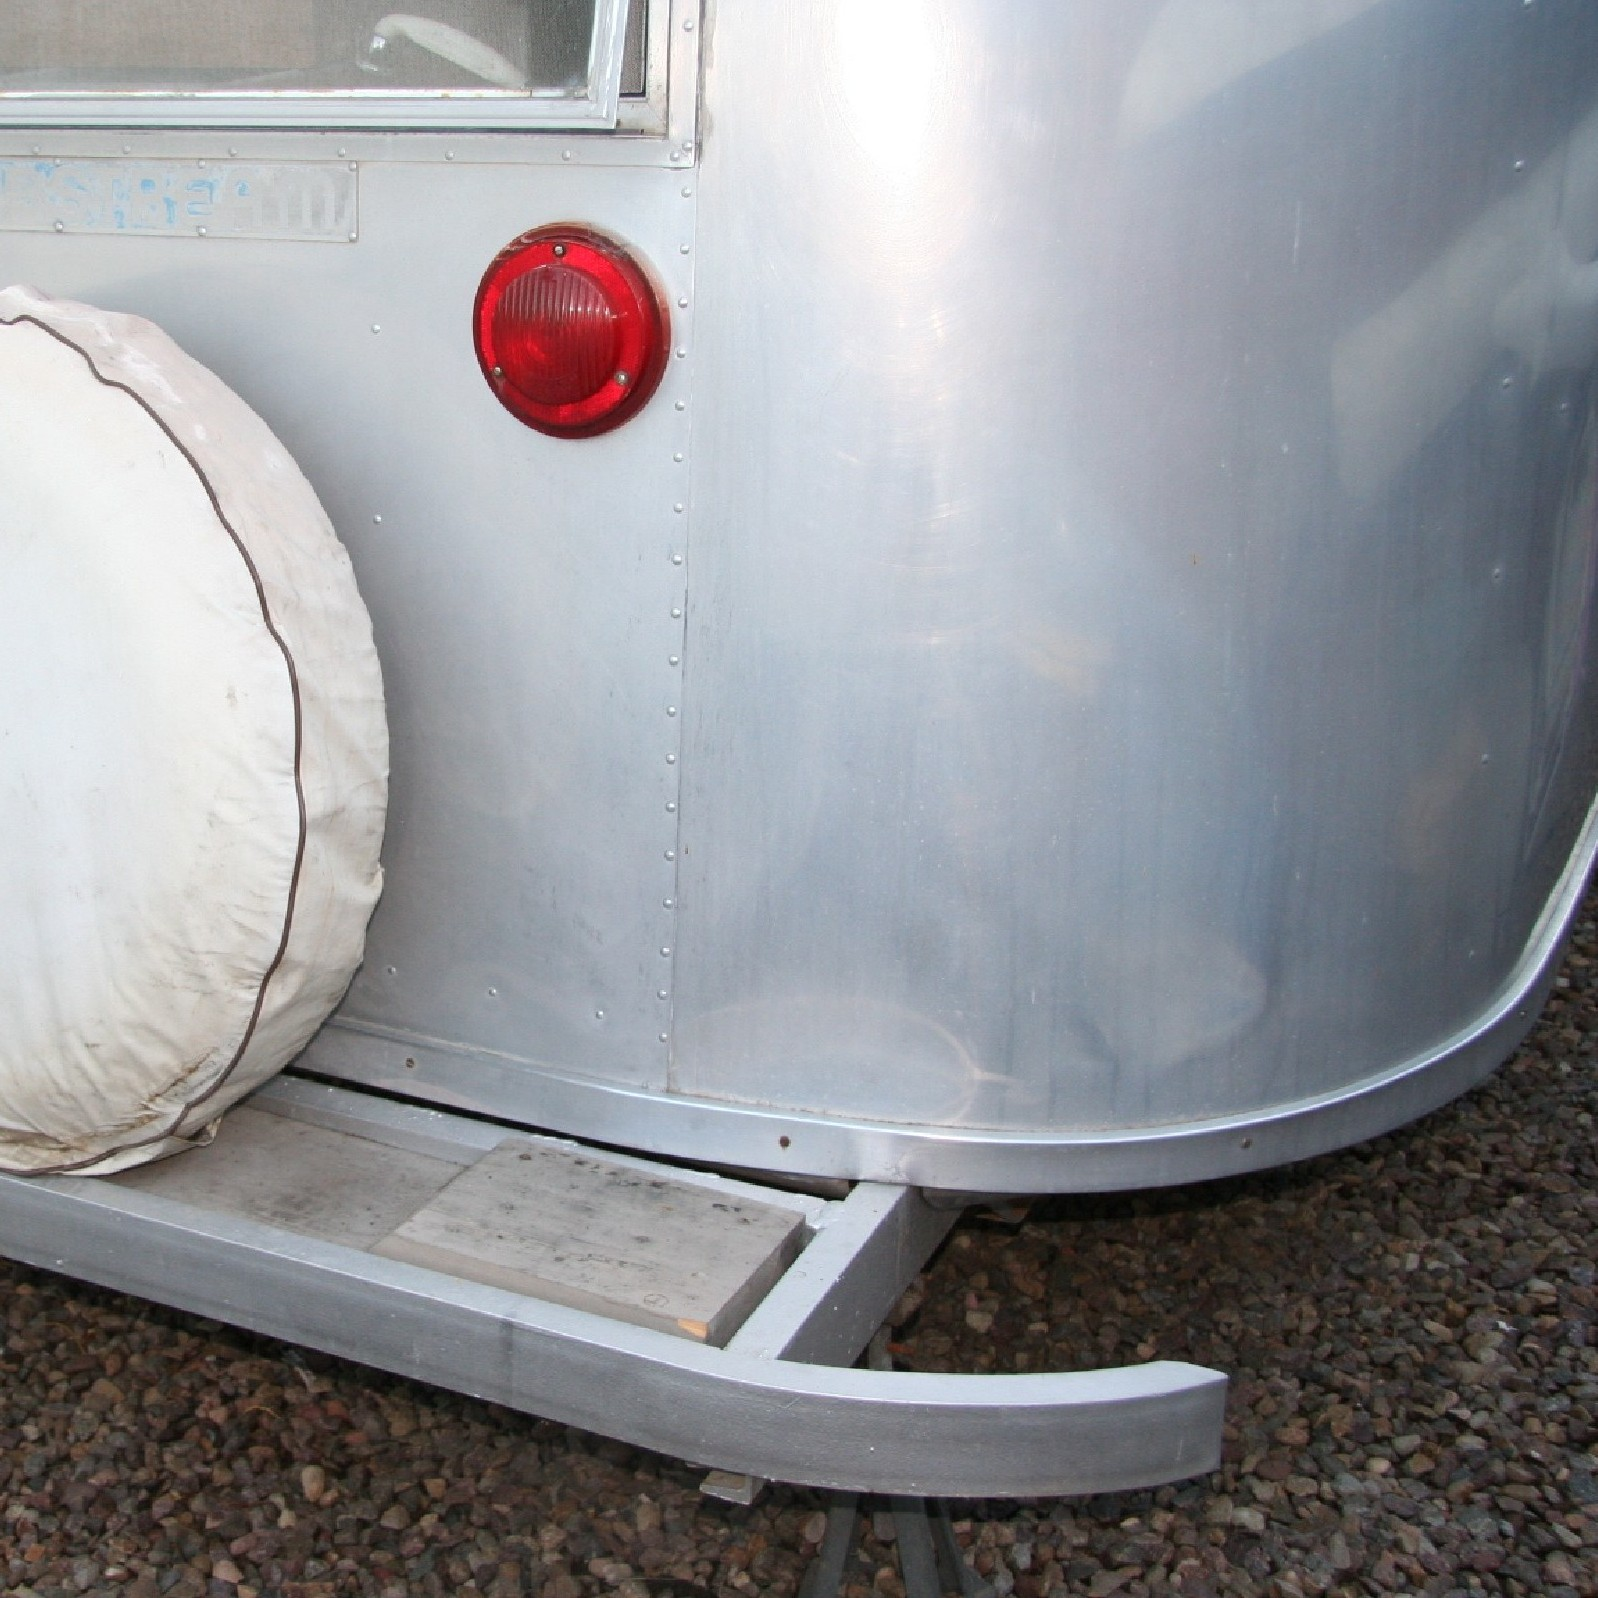 Click image for larger version  Name:airstream boot.jpg Views:88 Size:424.8 KB ID:50624